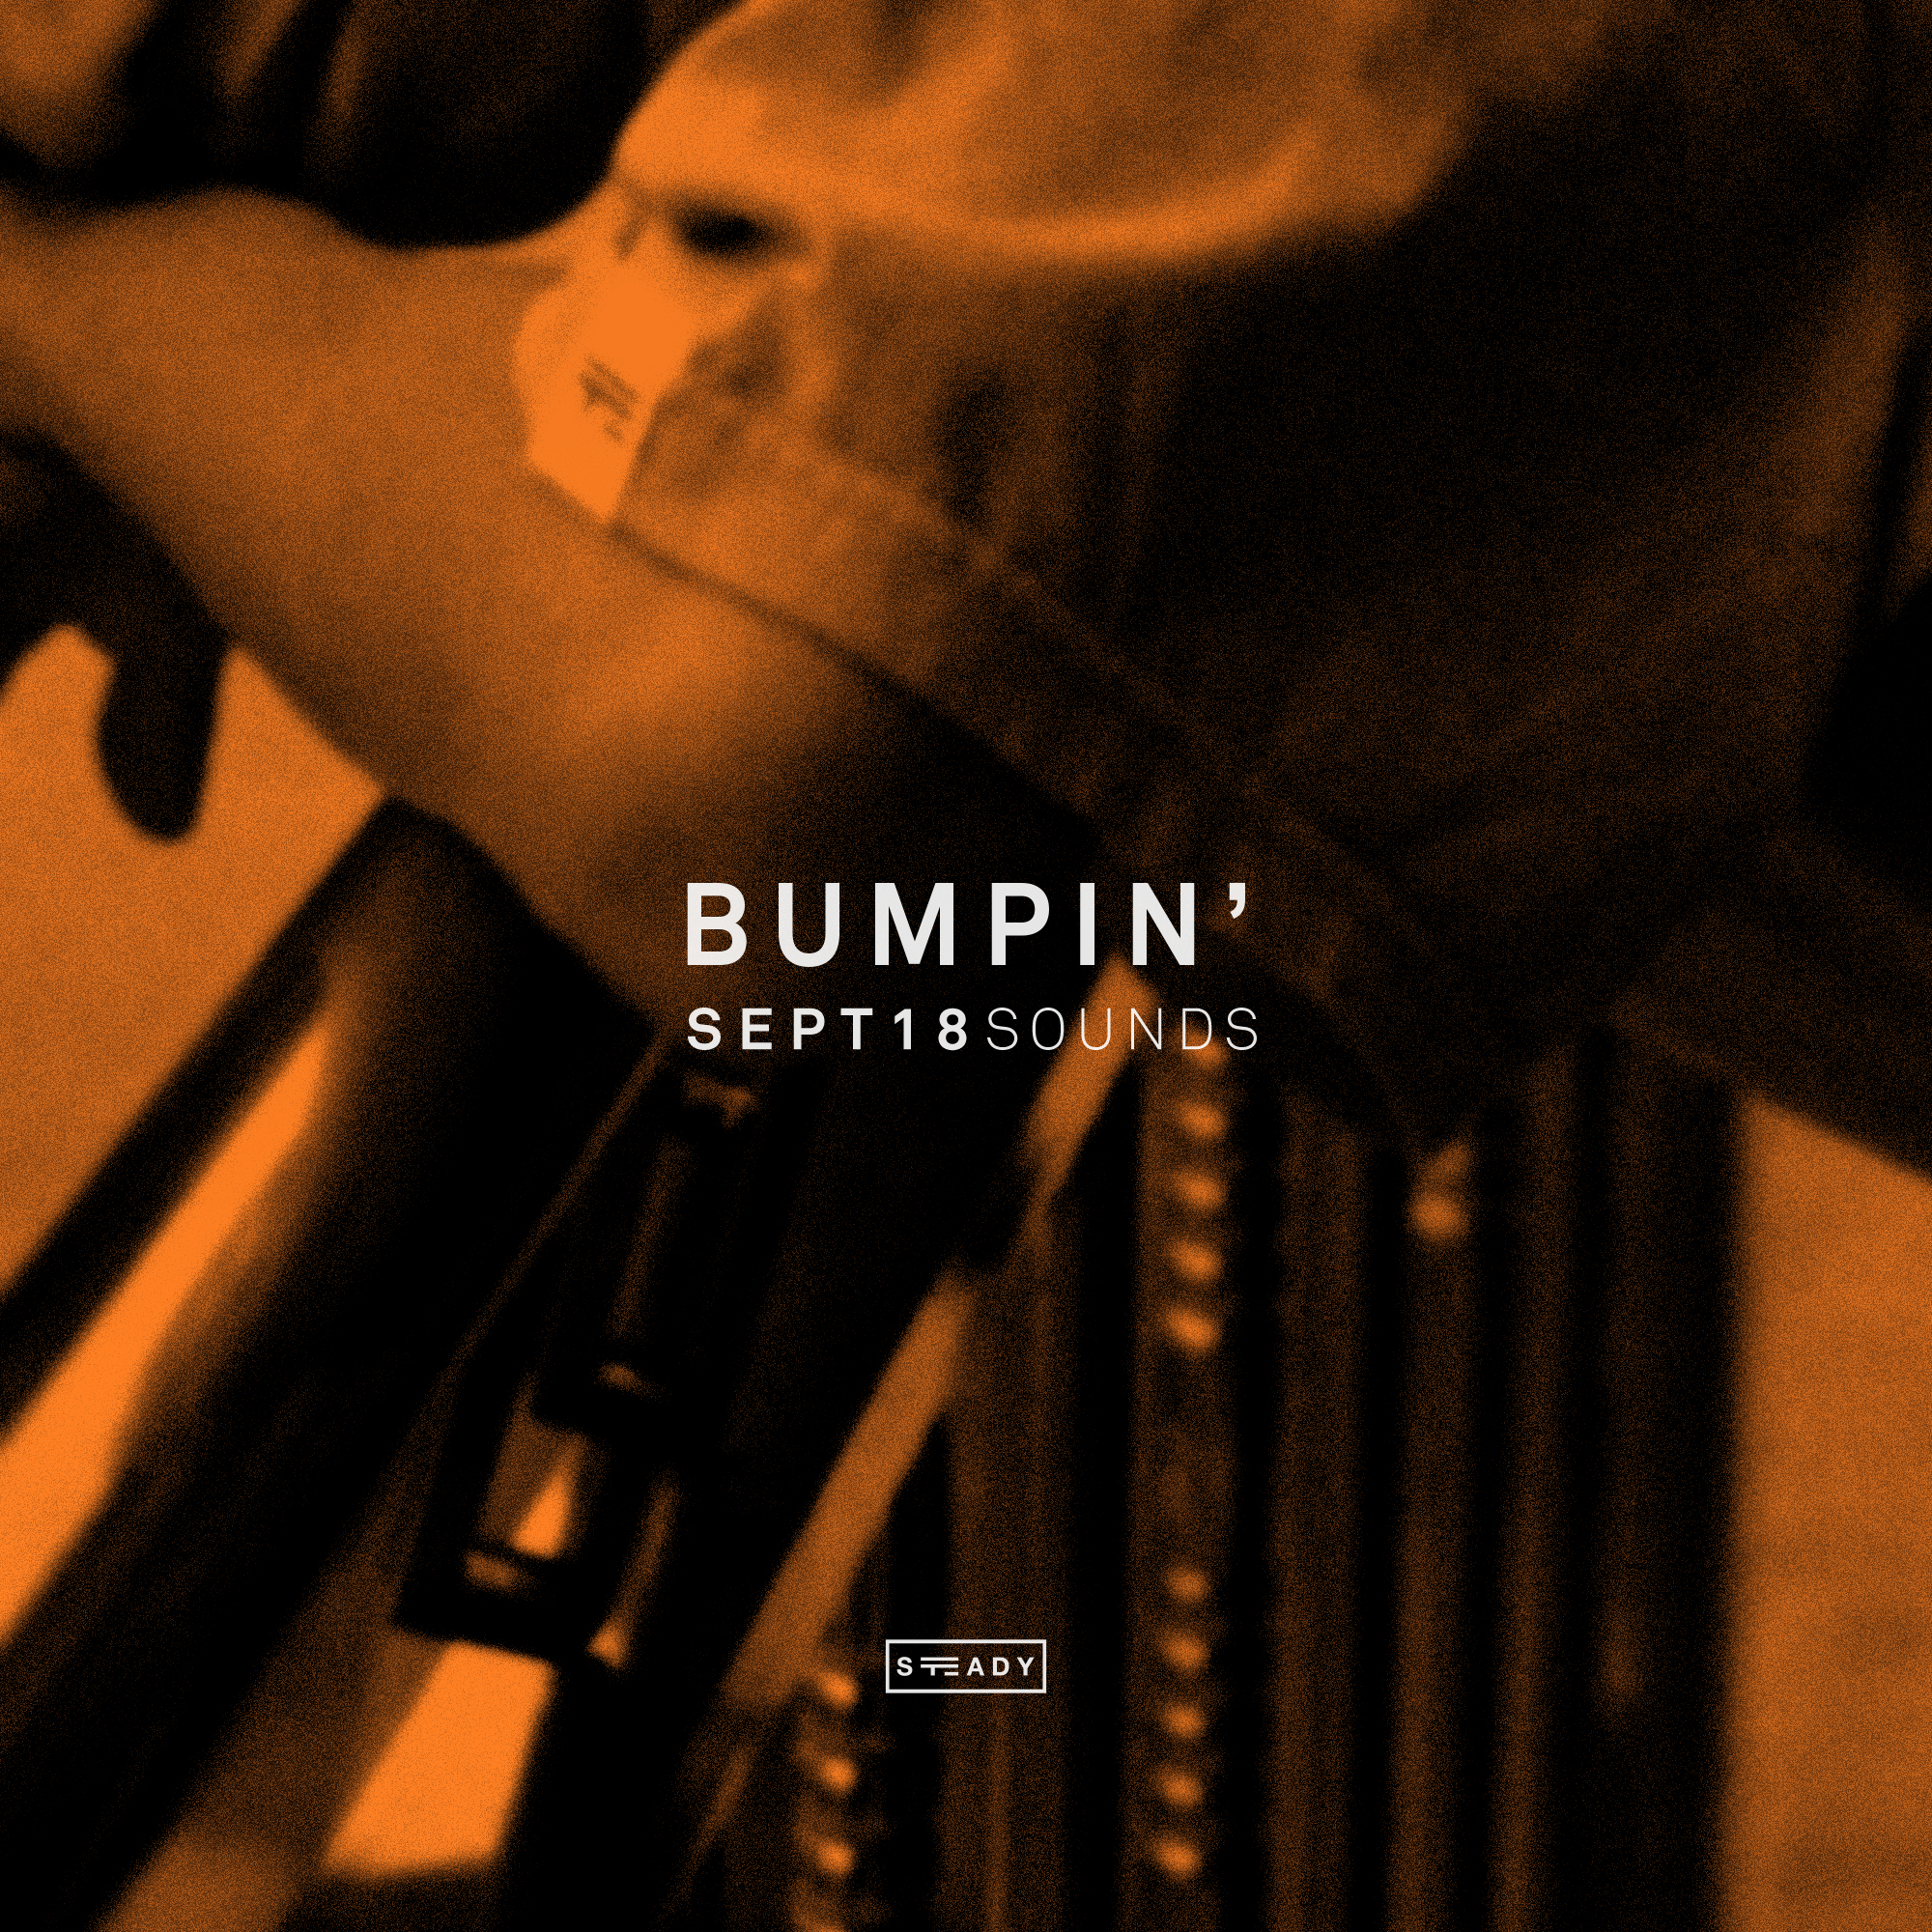 STEADY BUMPIN': SEPT18 SOUNDS